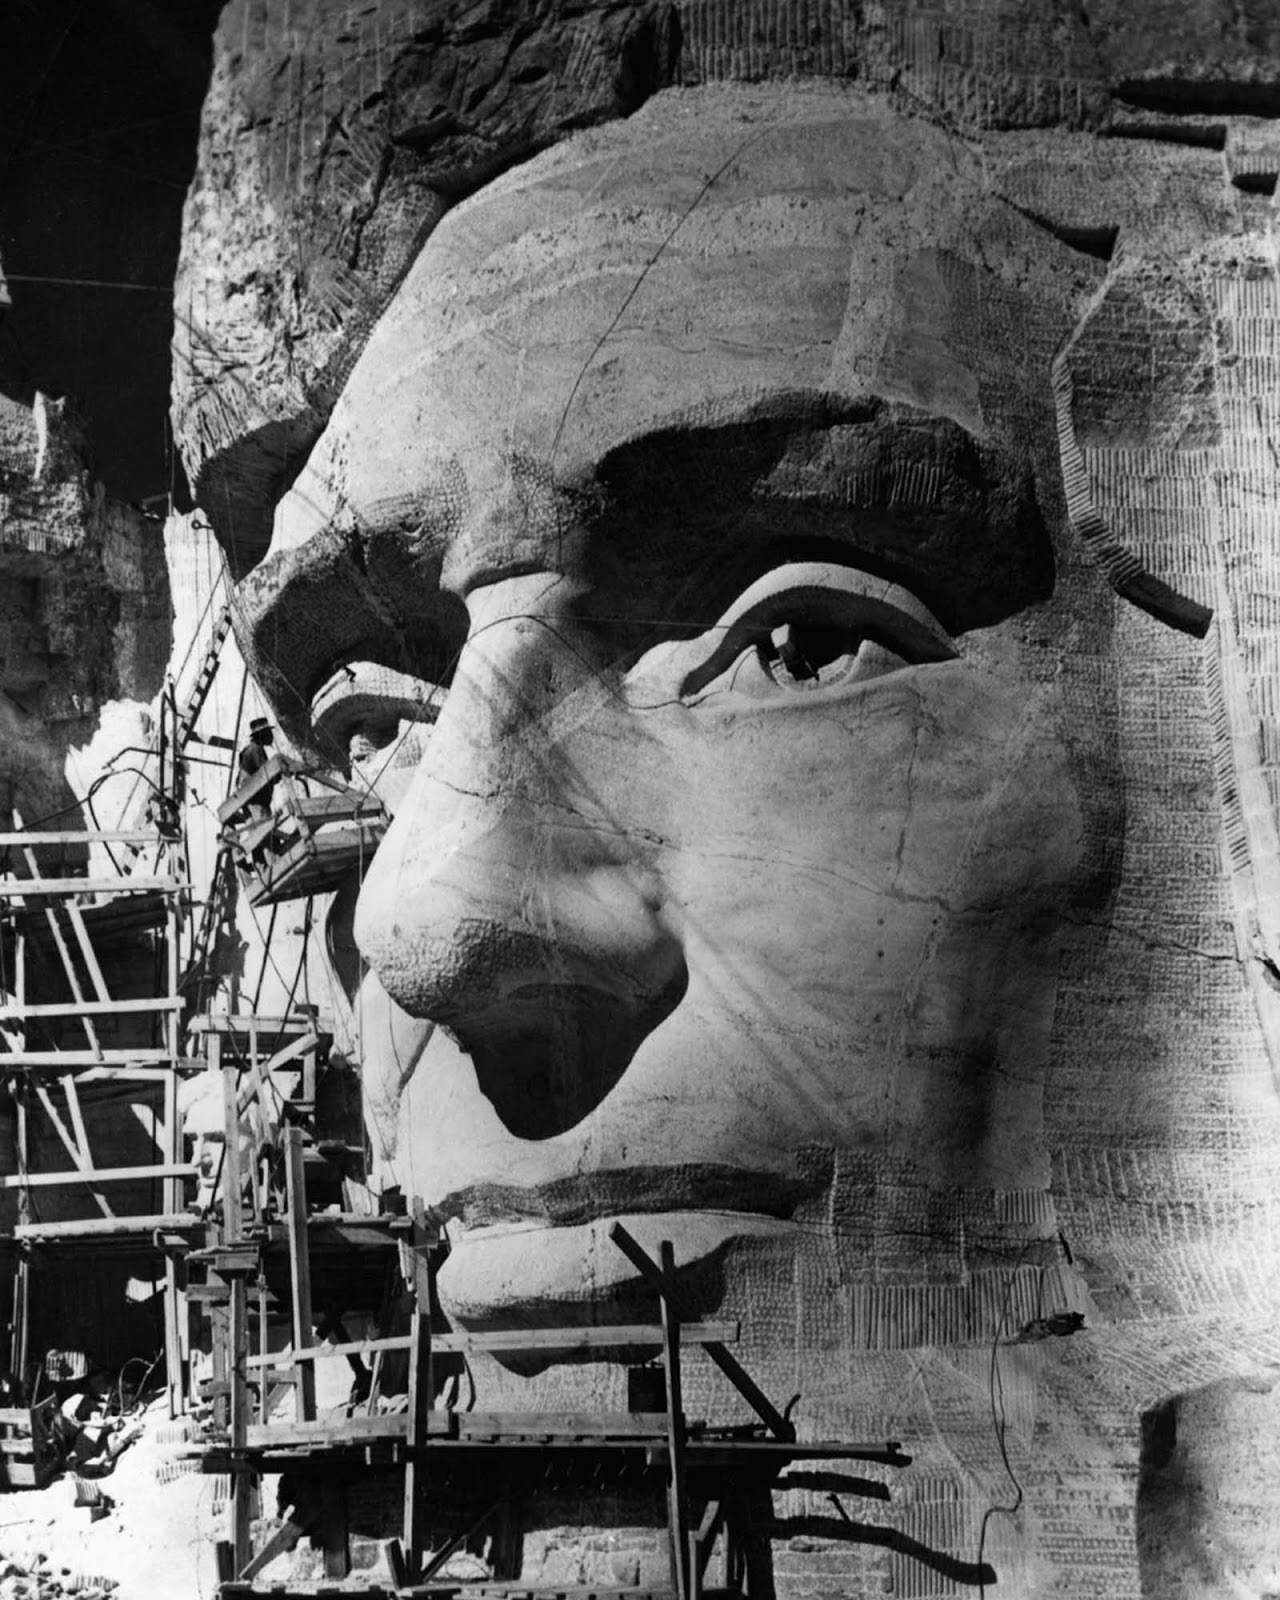 Borglum works on Abraham Lincoln's eye. 1937.